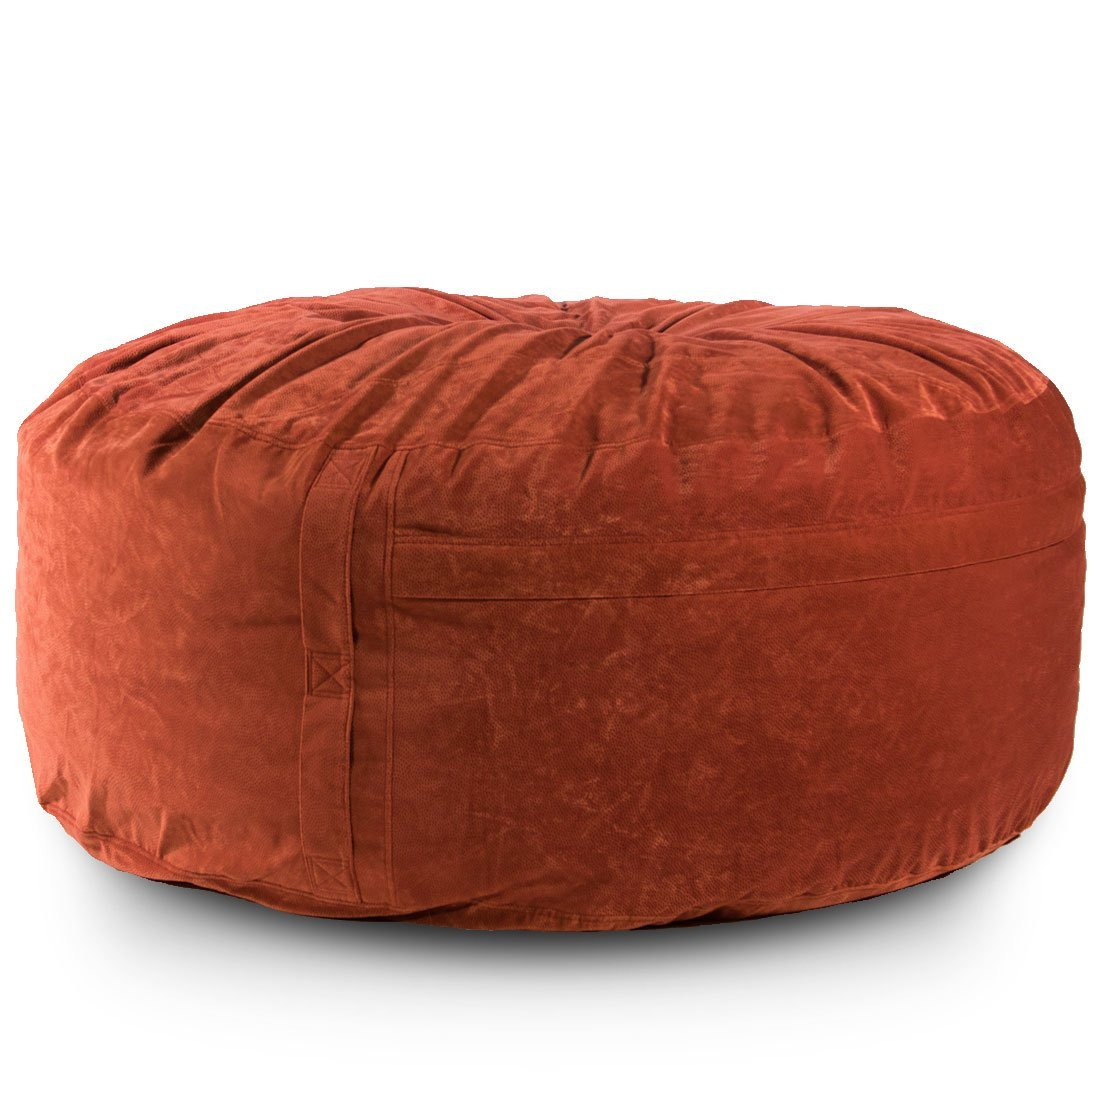 Giant Bean Bag Chairs For Adults Giant Bean Bag Chairs For Adults Decor Ideasdecor Ideas